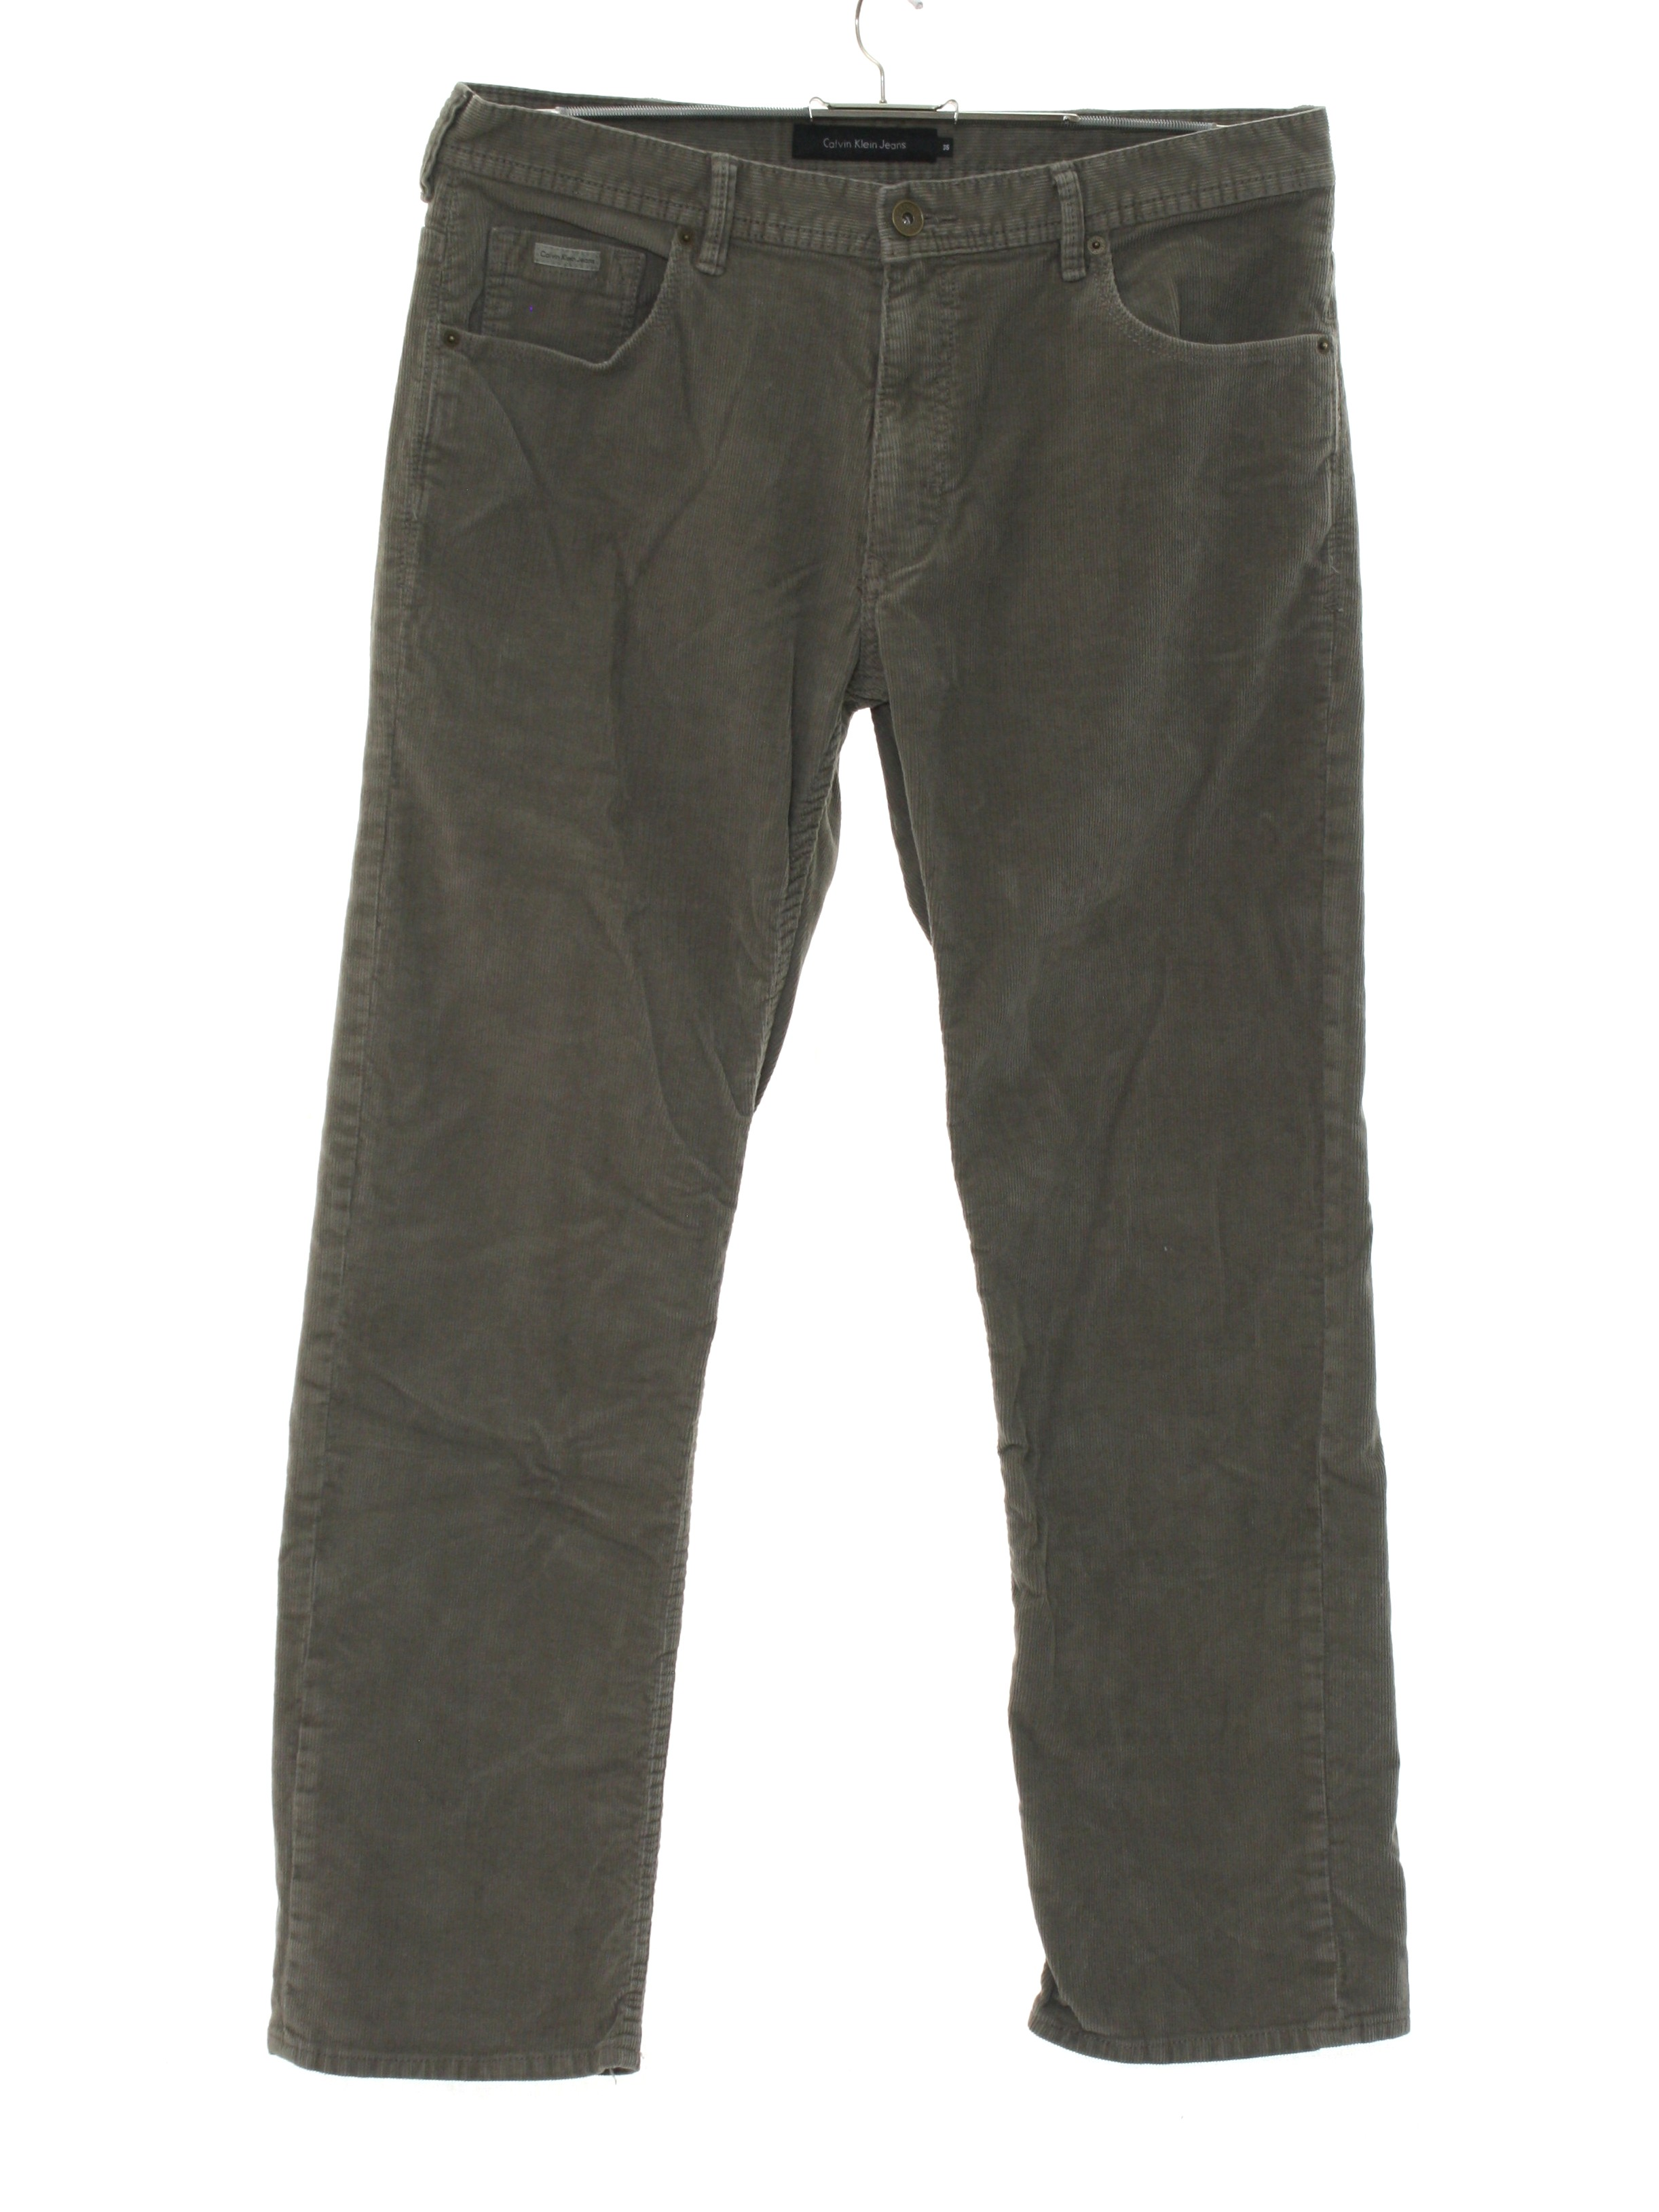 81b495b2 Pants: 90s -Calvin Klein Jeans- Mens grey solid colored cotton blend ...